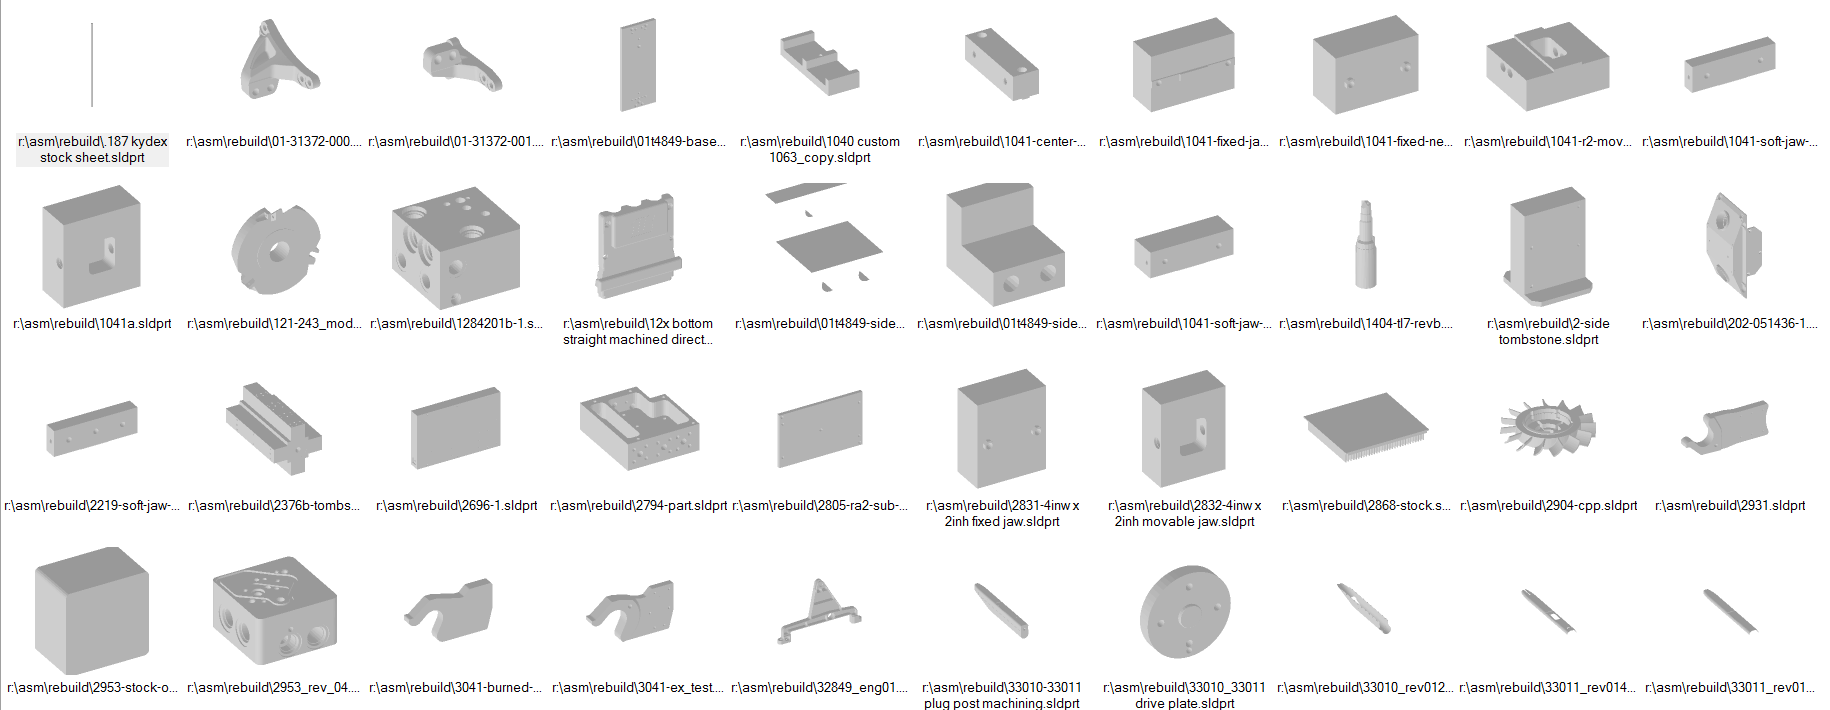 Example of Database consisting of thousands of Parts.